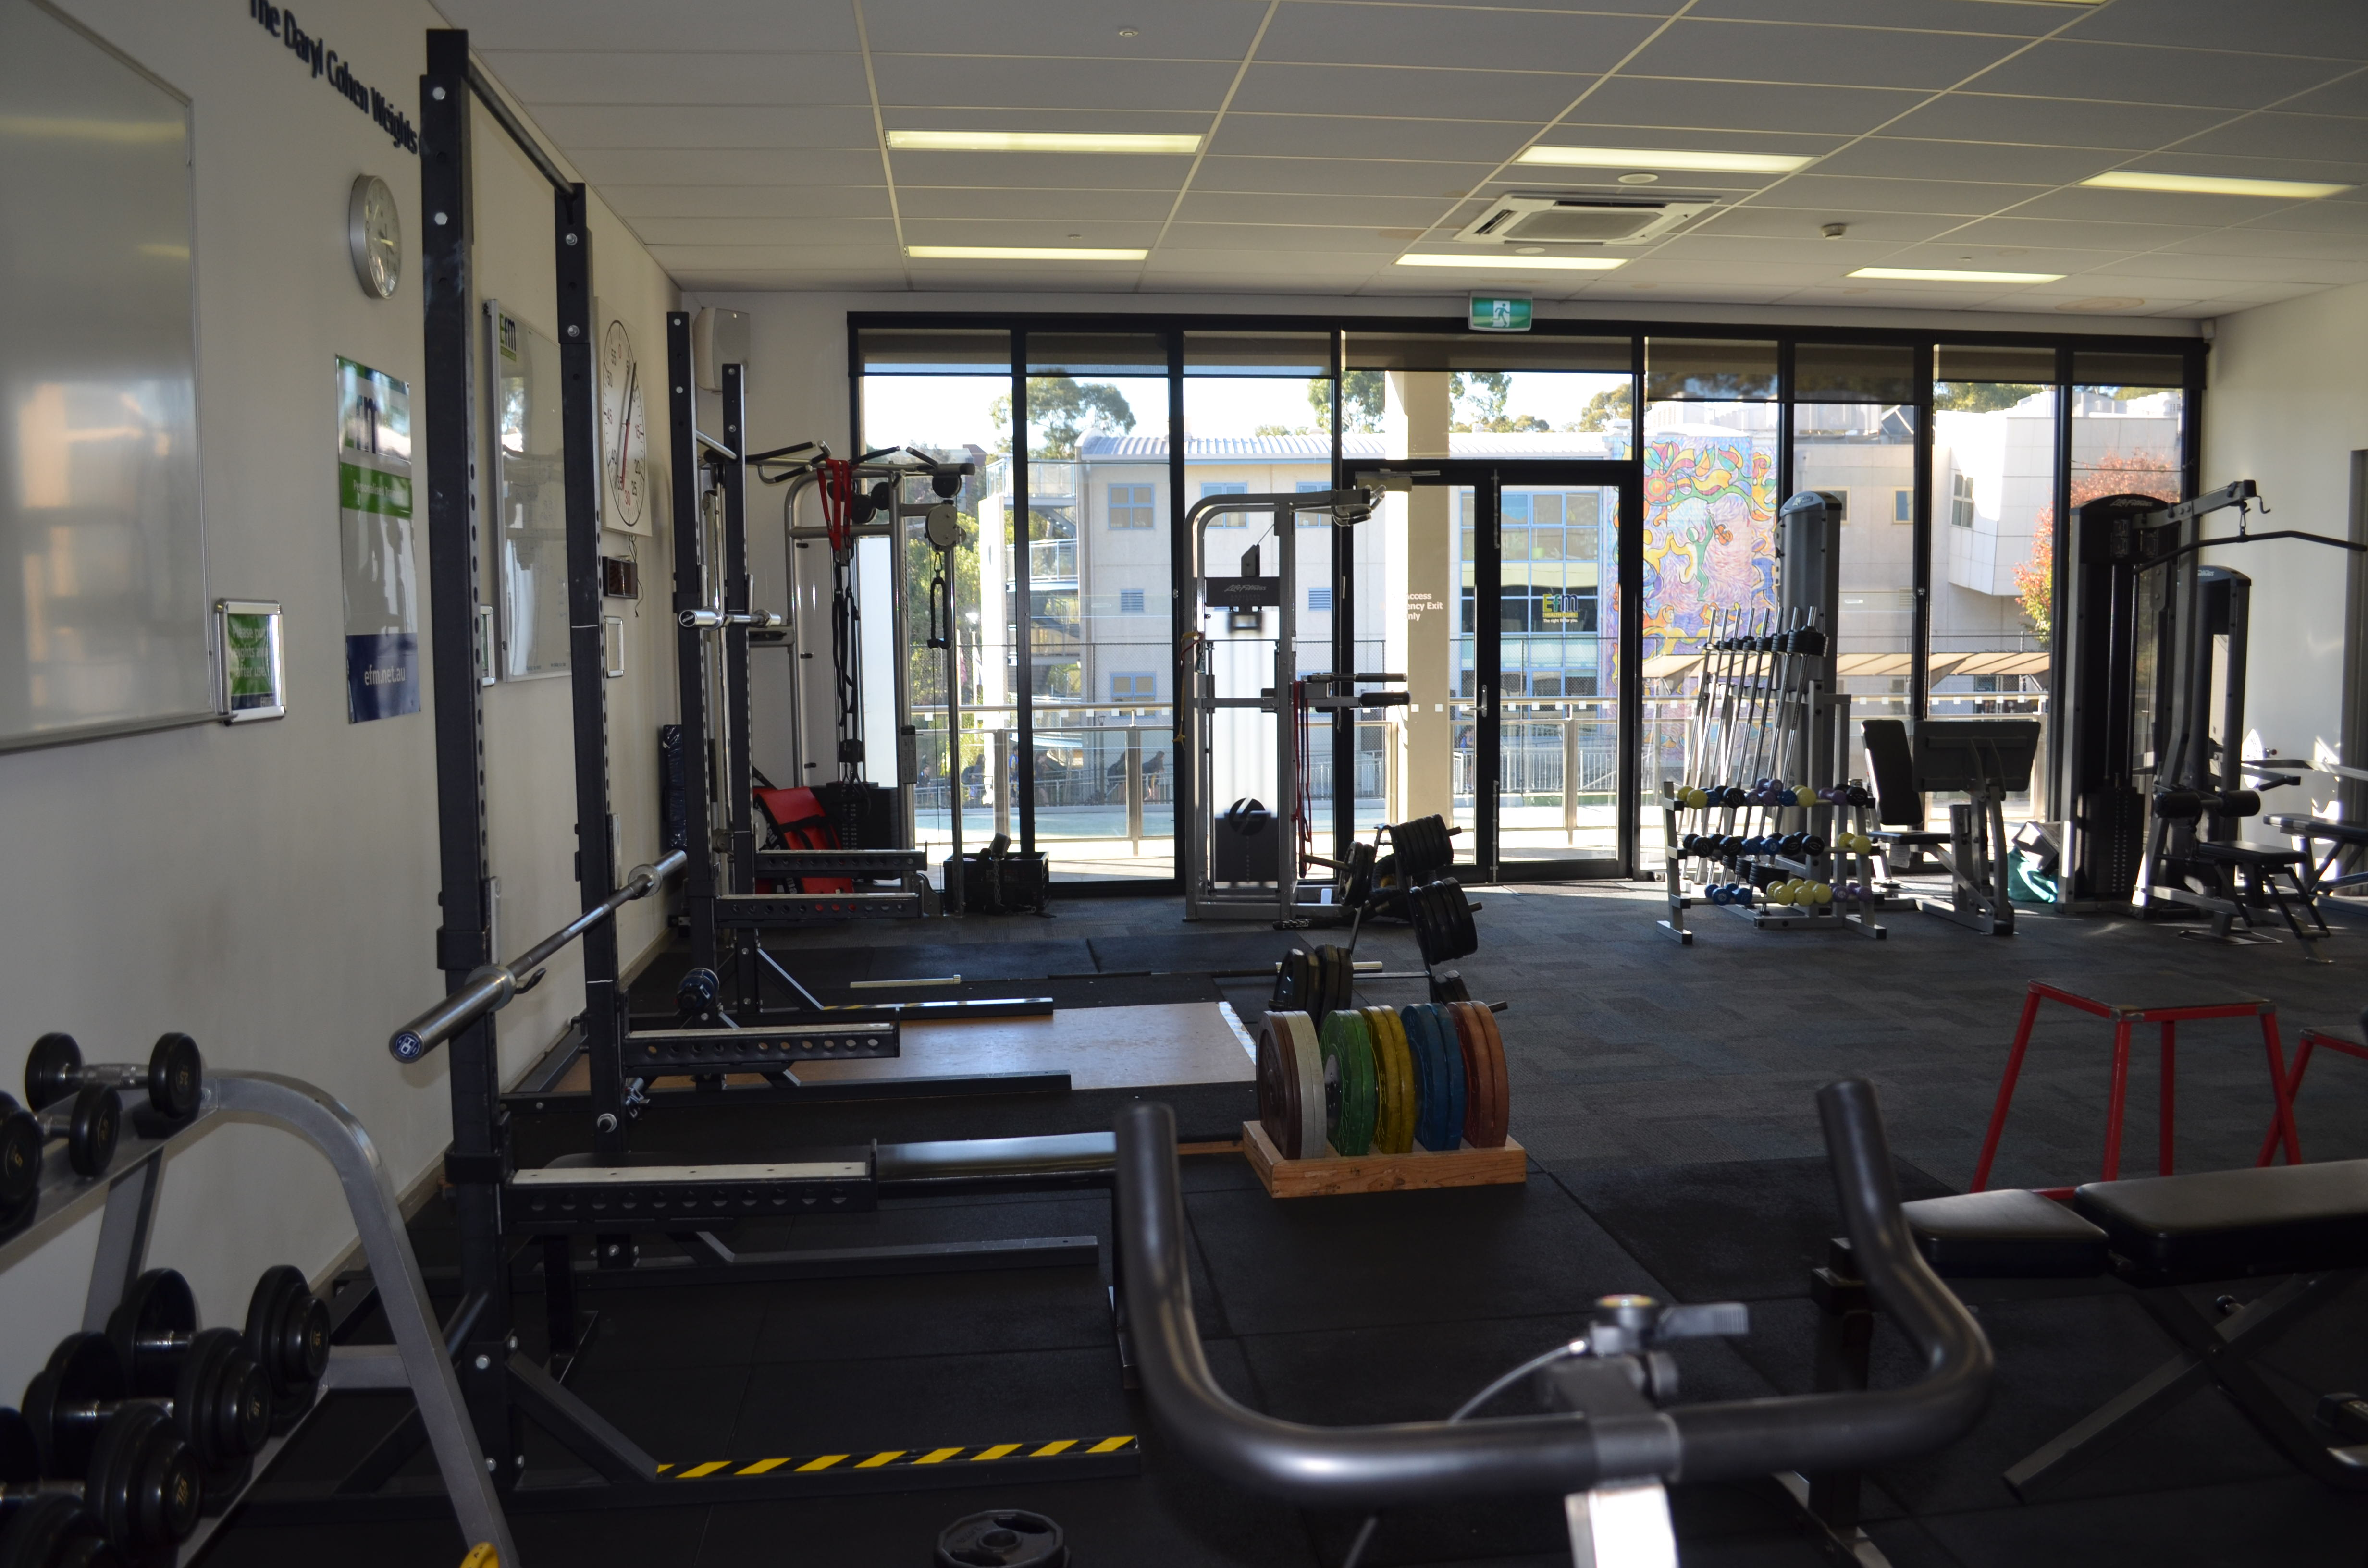 efm-health-club-gym-franchise-for-sale-fitness-coaching-personal-training-4